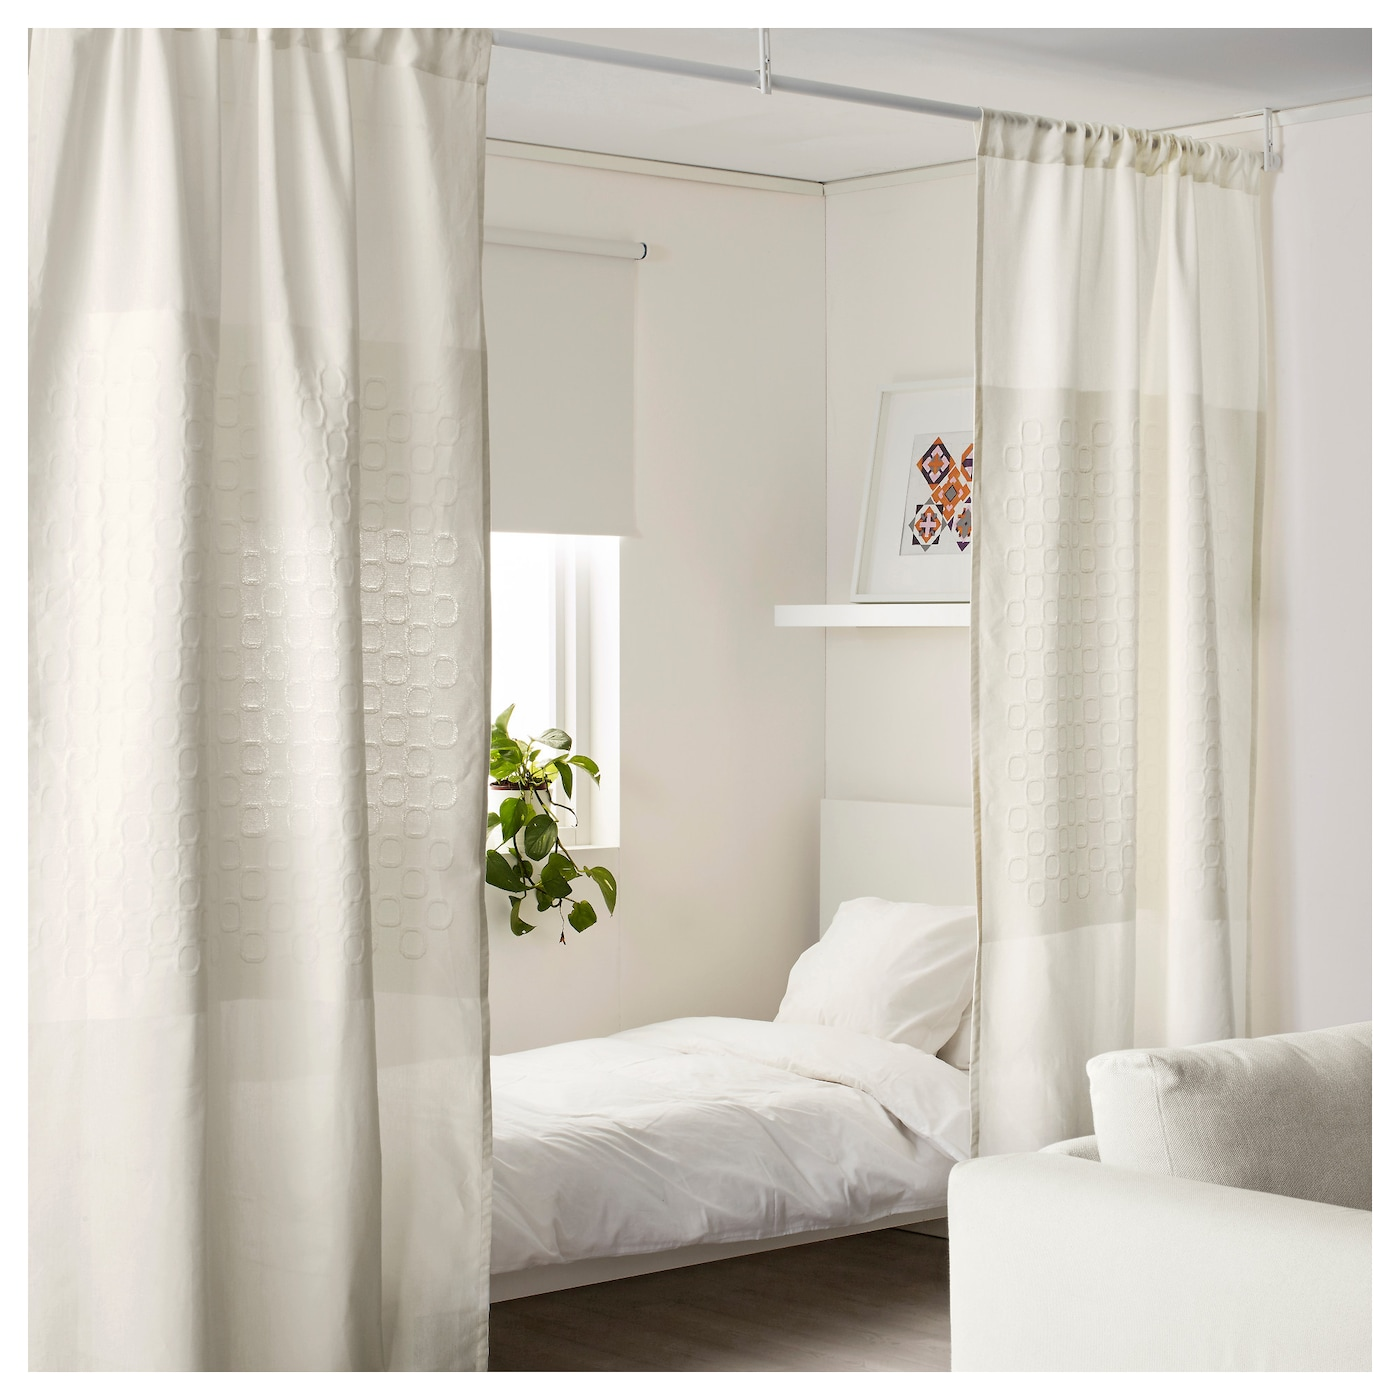 papyruss v curtain room divider white 120 x 250 cm ikea. Black Bedroom Furniture Sets. Home Design Ideas